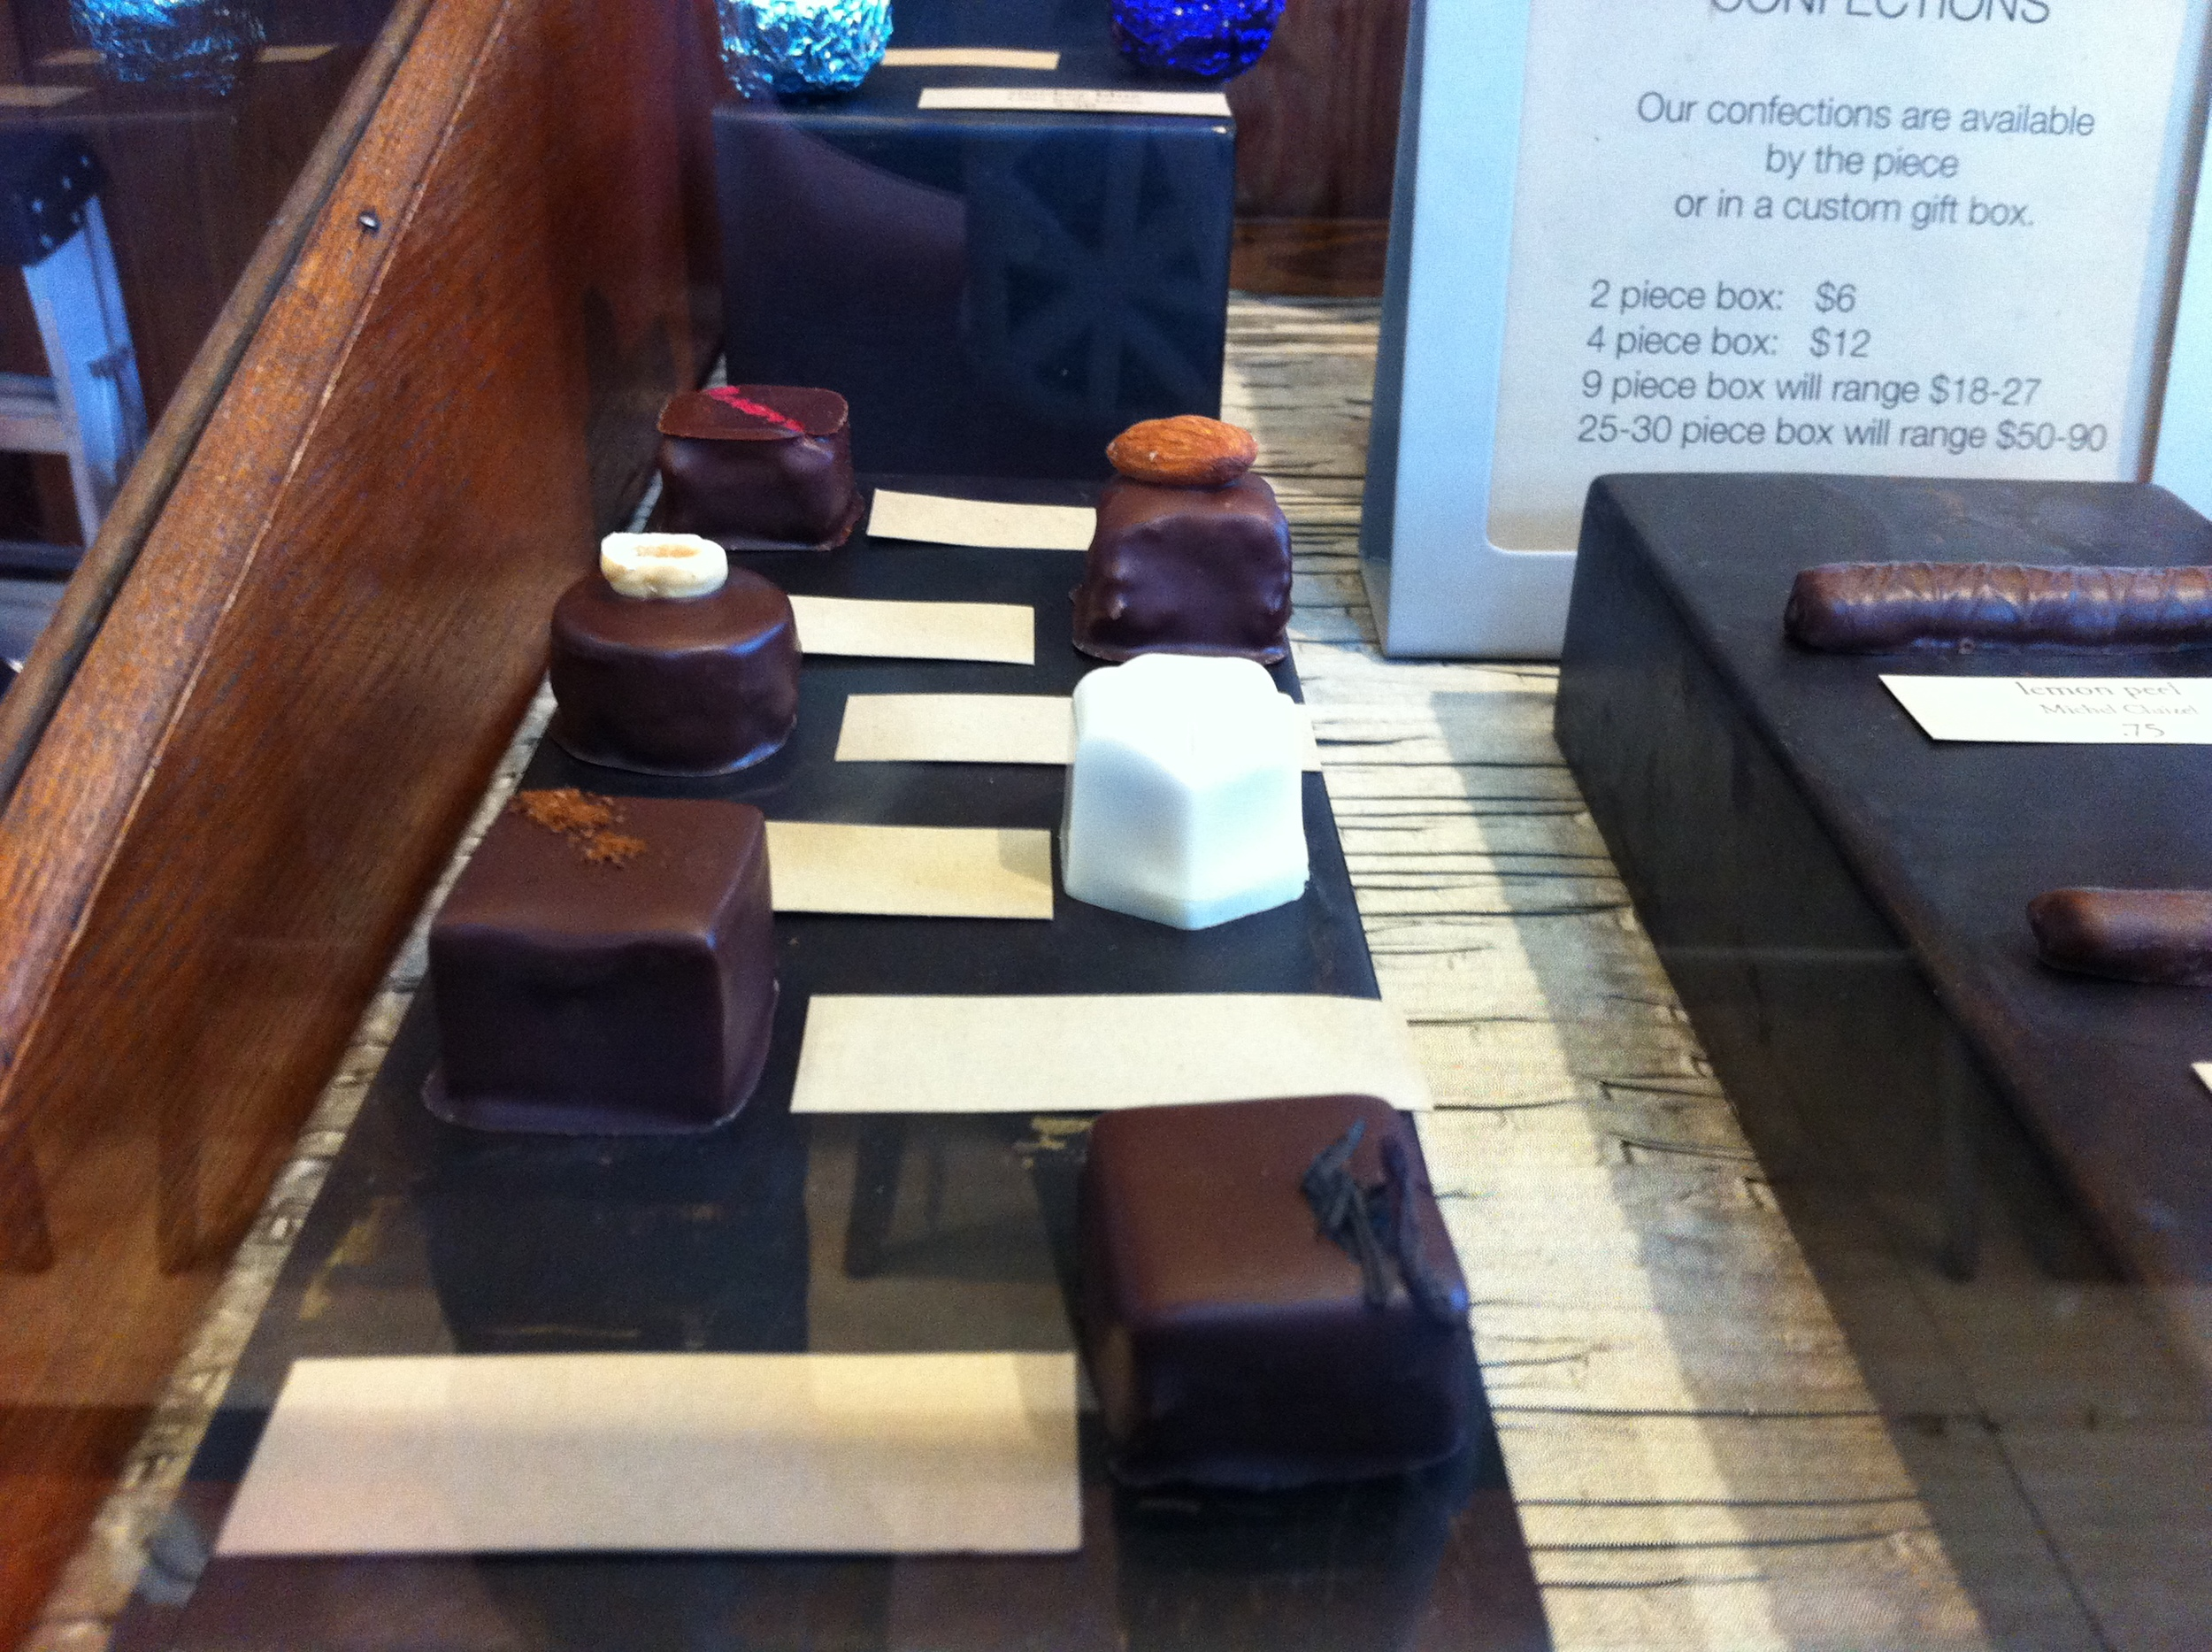 One of the display cases of chocolates at Cacao!